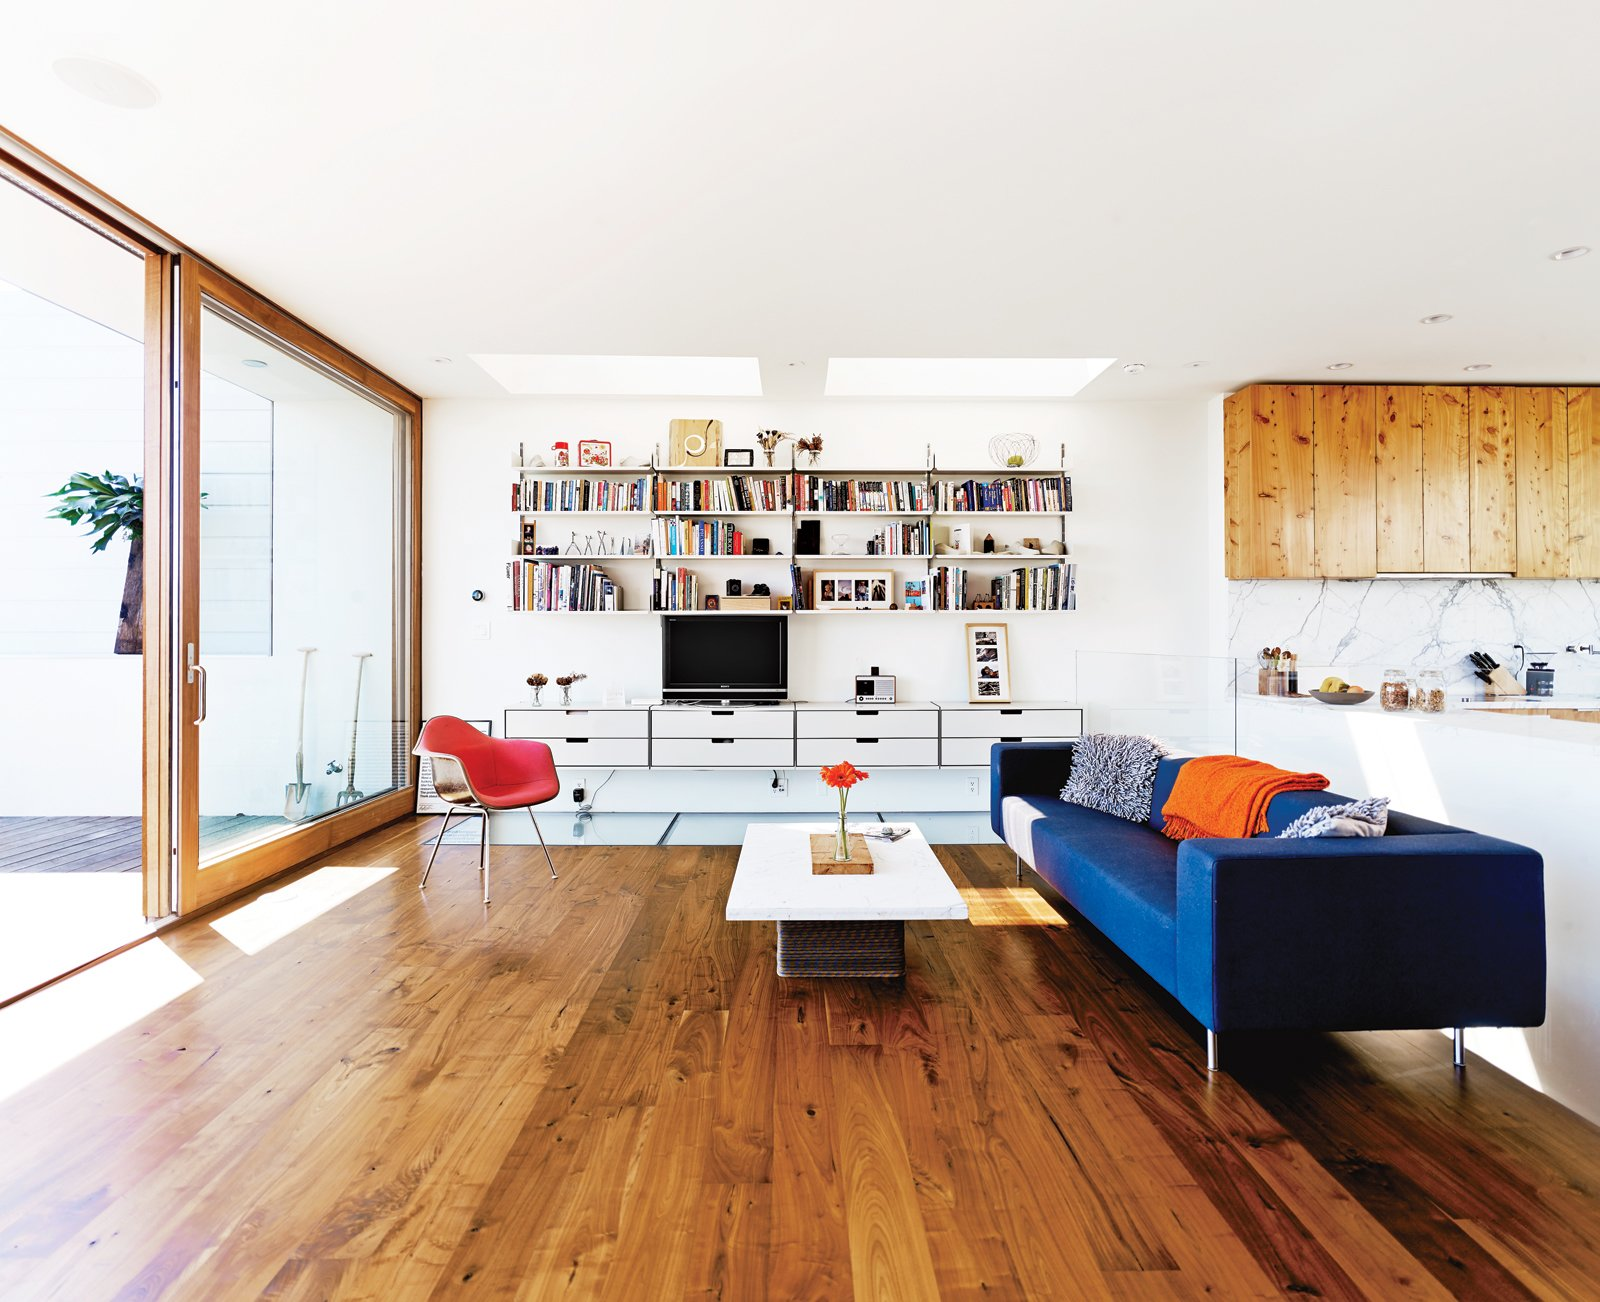 A 606 Universal Shelving System by Dieter Rams for Vitsoe hangs tough on the only opaque wall of the living room. Russell-Clarke and Moolsintong designed the coffee table, and Marcel Wanders gets credit for the Bottoni sofa for Moooi.  Photo 5 of 17 in Striking Slatted Wood and Glass Home in San Francisco